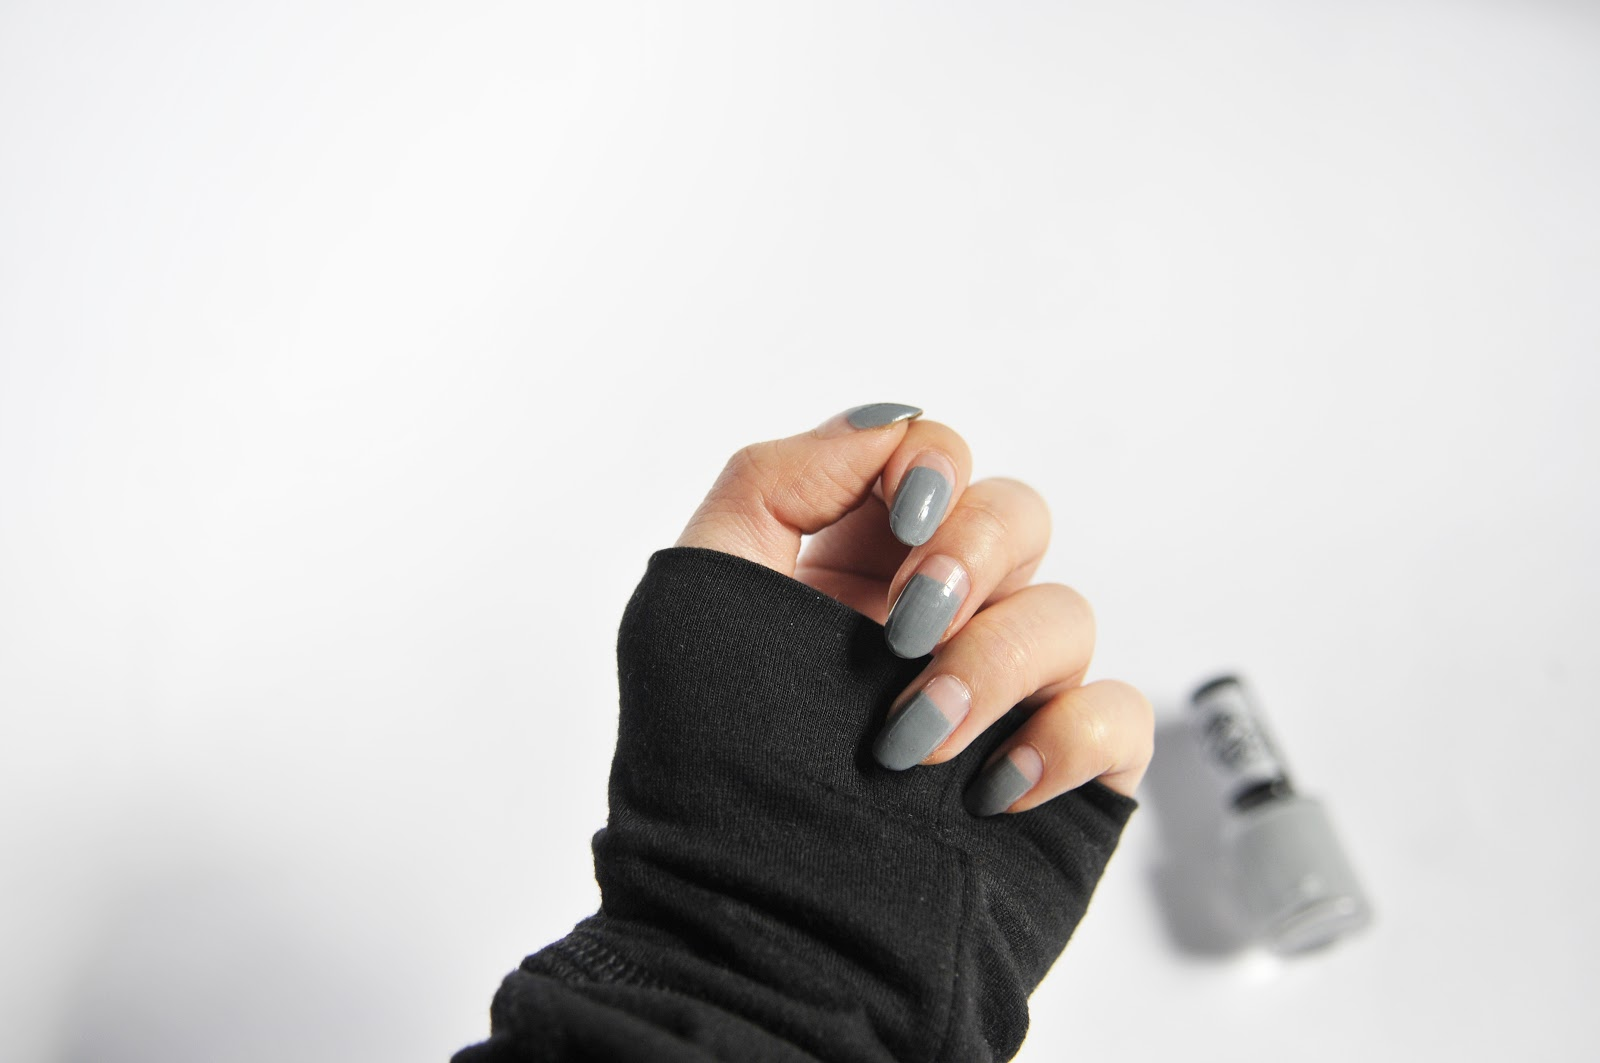 I used the Rimmel x Rita Ora My Grey Collection 60 Seconds Nail Polish in 807 My Grey ($4.99 CAD).